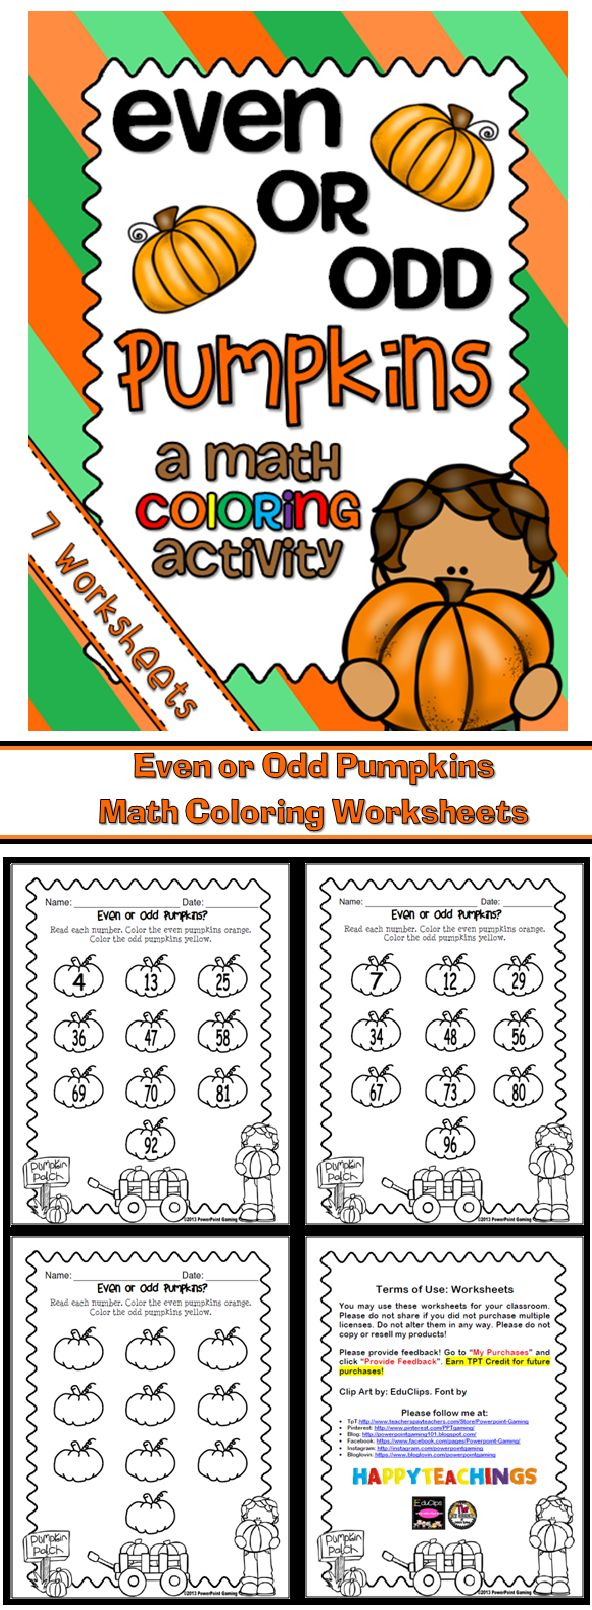 This 8 page set of worksheets reinforce learning even and odd numbers. Students will color even numbers one color and odd numbers another color. The numbers range from 0 to 99. Perfect for your high level thinkers. Great for a guided math center or pumpkin celebration.